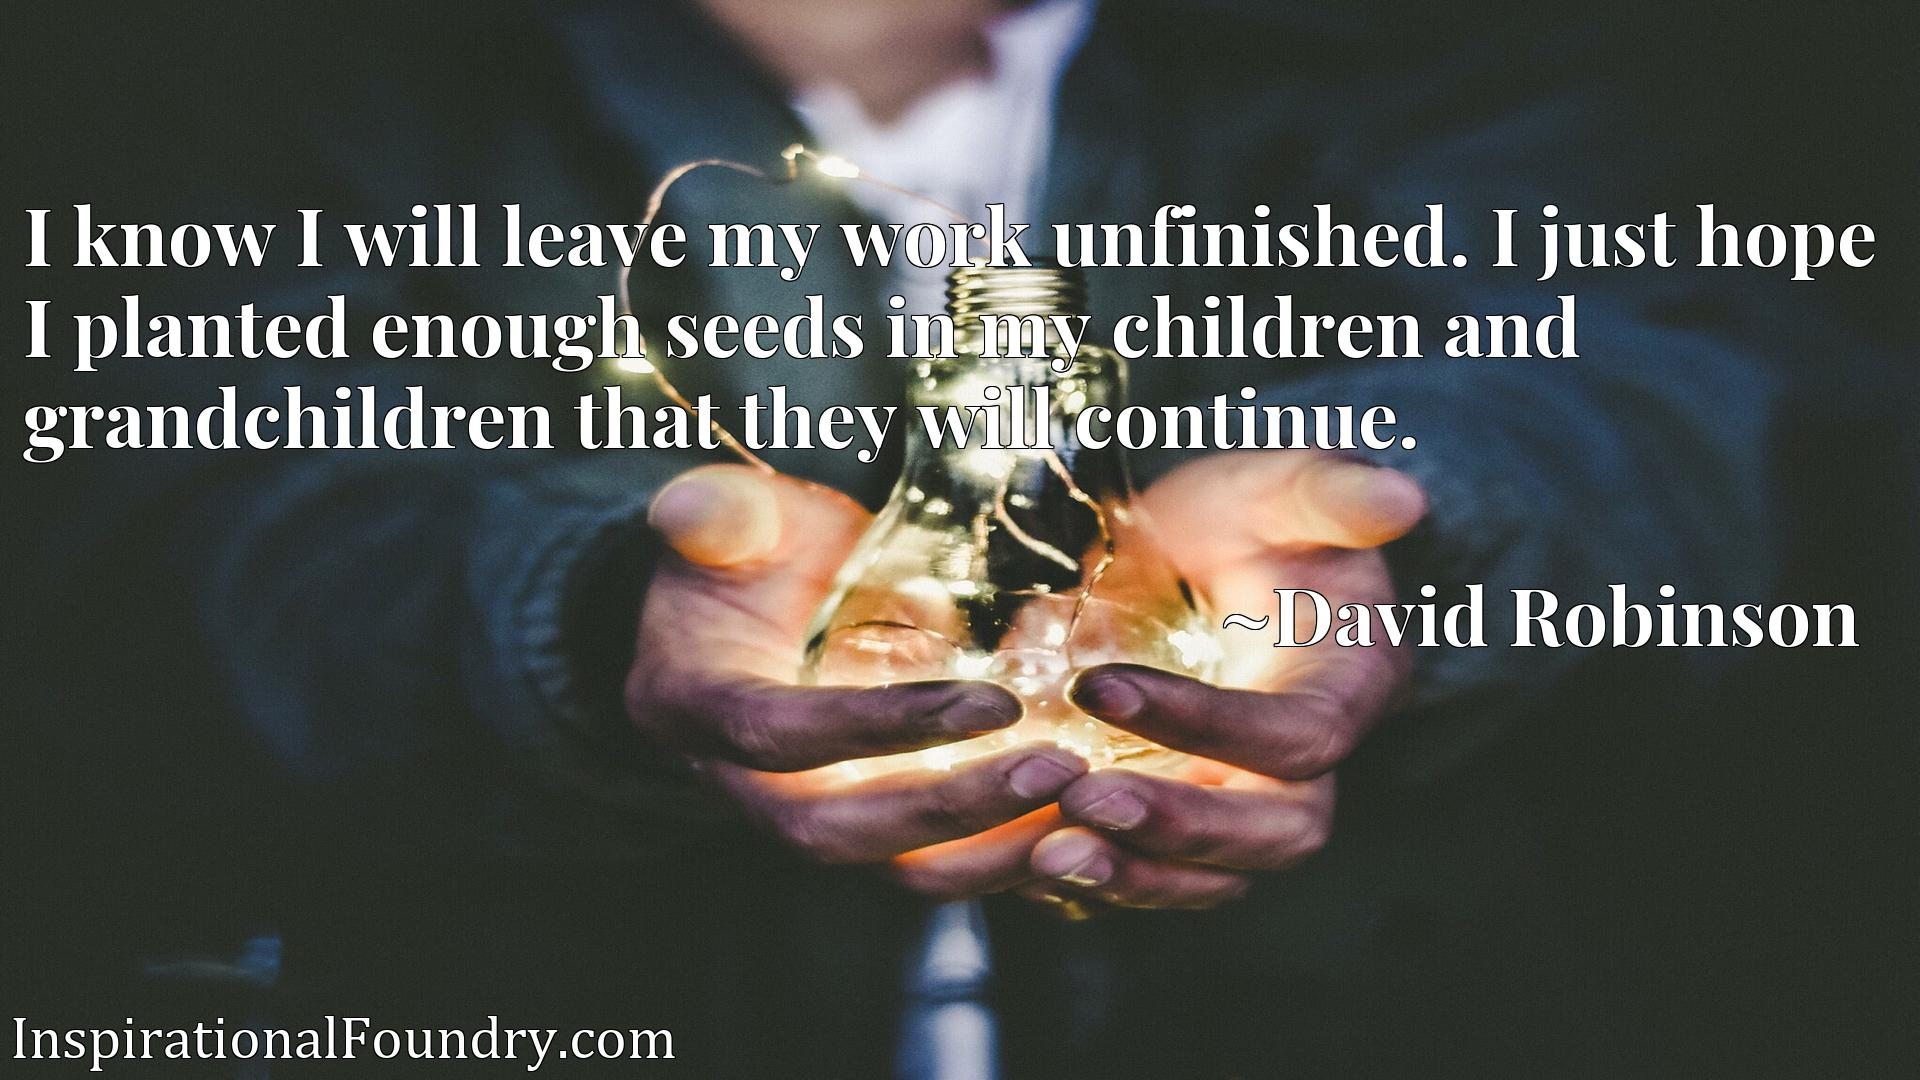 I know I will leave my work unfinished. I just hope I planted enough seeds in my children and grandchildren that they will continue.